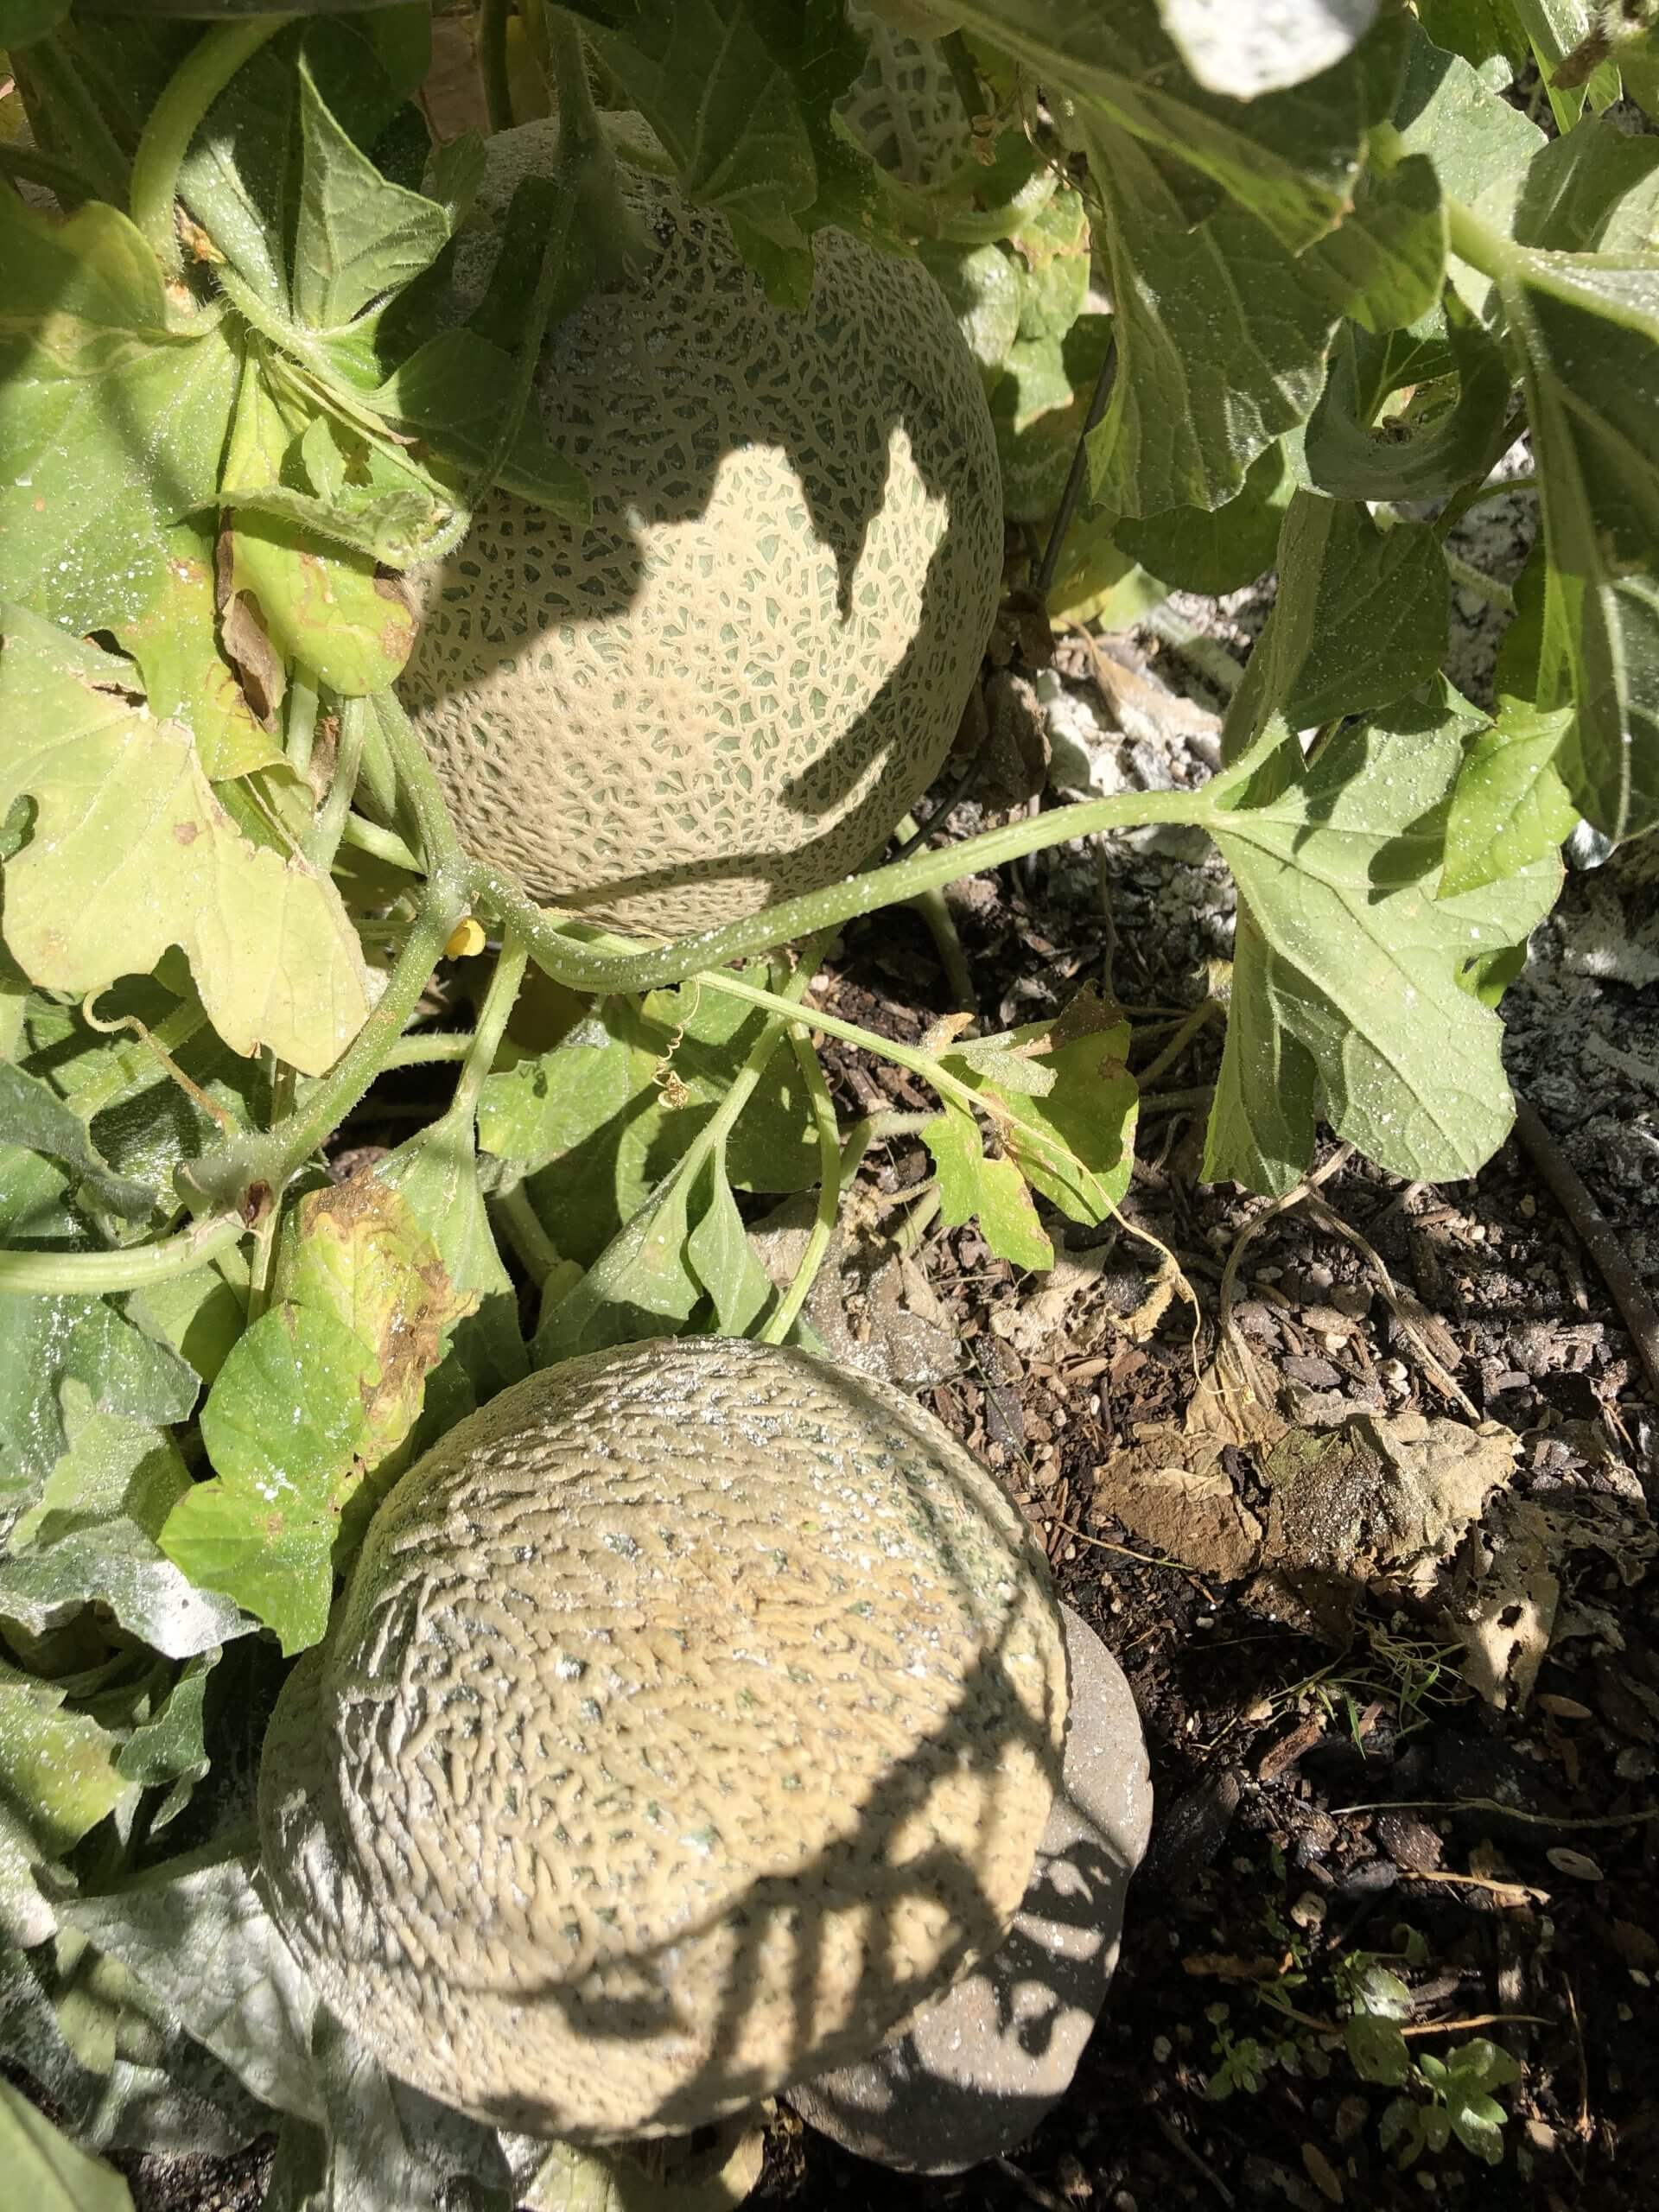 The Wonders of My Garden, and The Joys of Composting